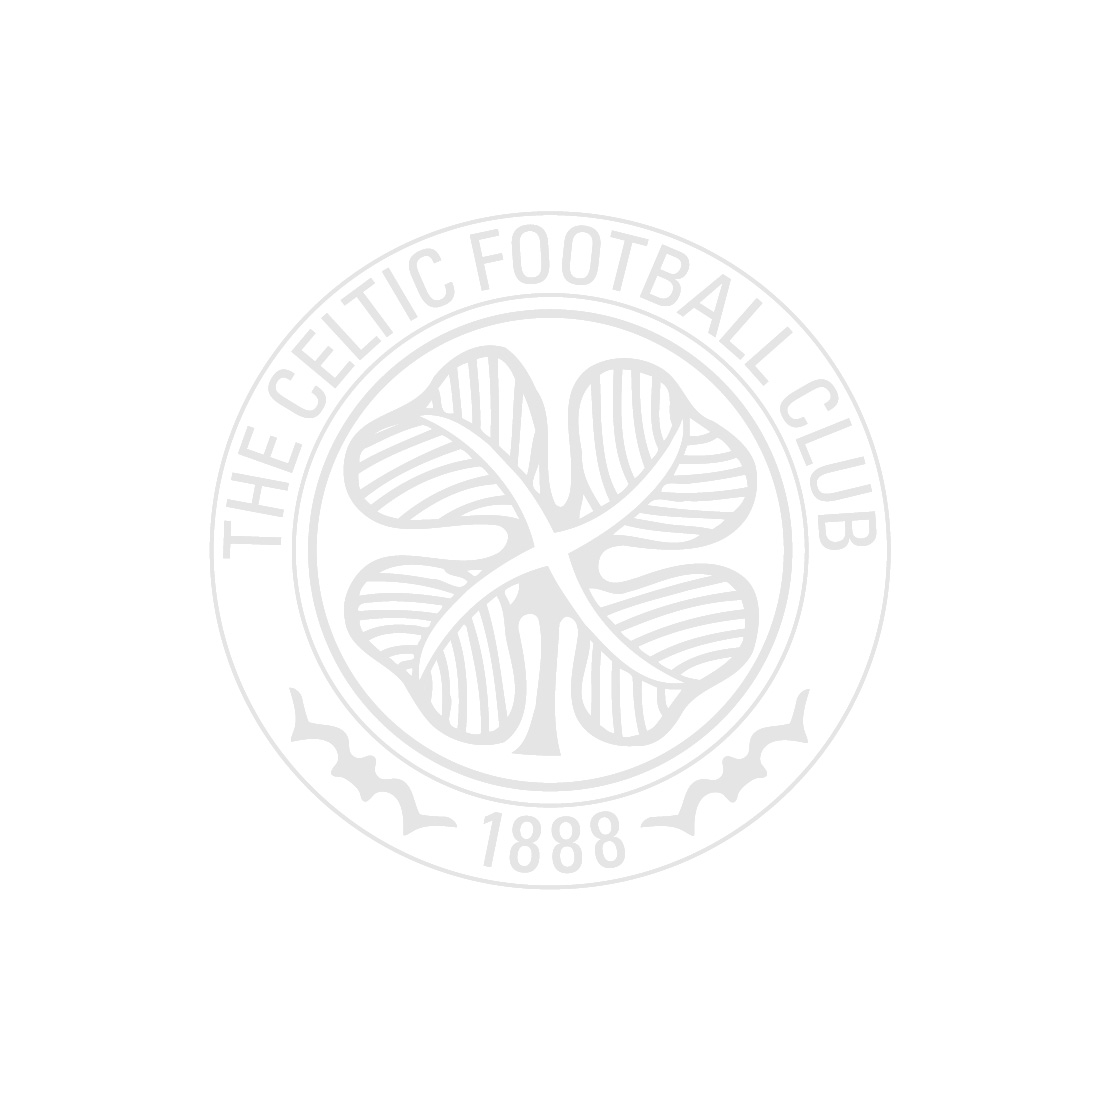 Celtic Honours Pennant Including Season 18/19